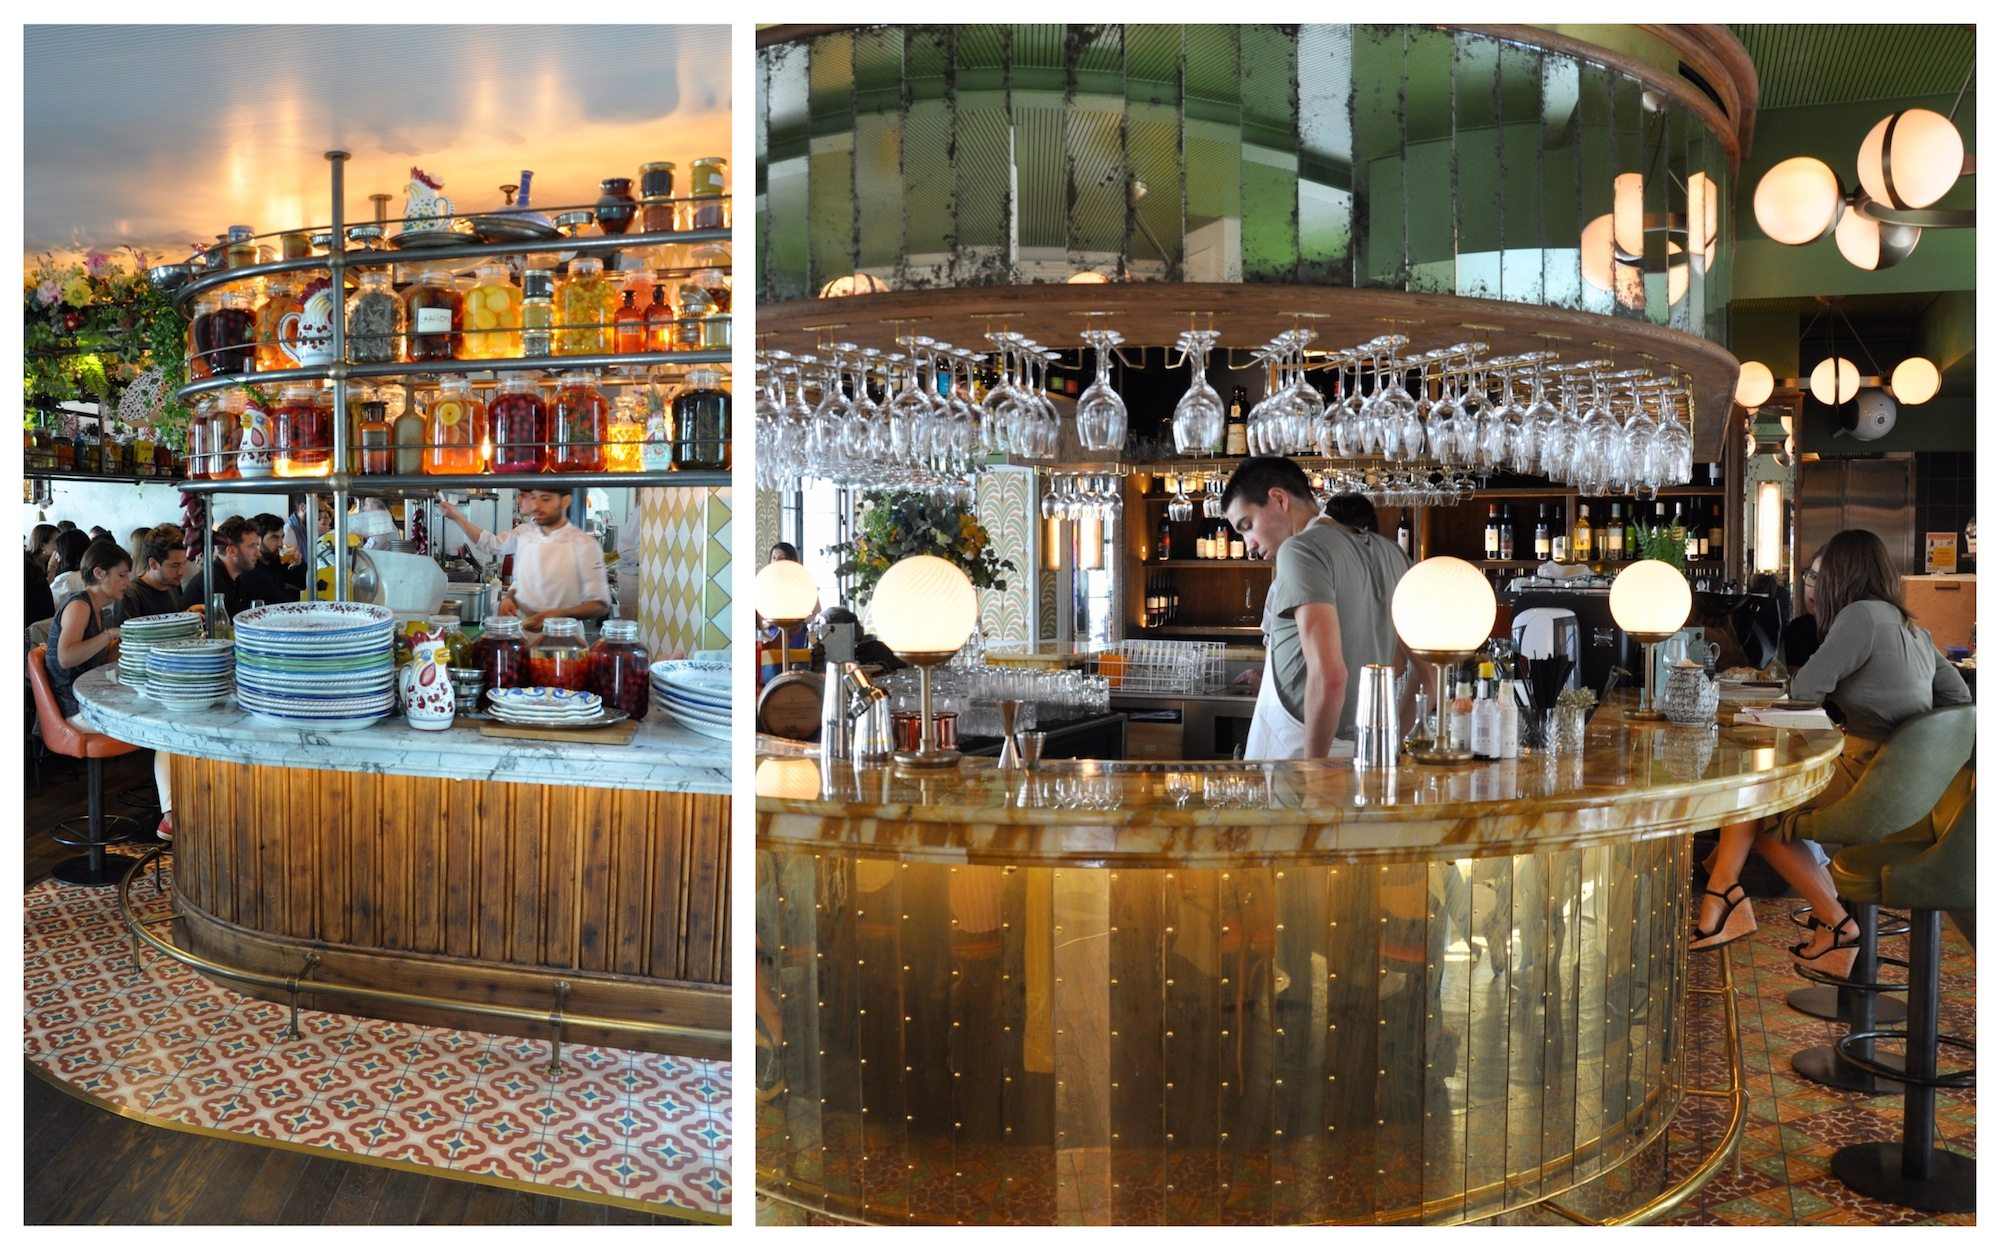 The Big Mamma Group offers Trendy, Fresh, Authentic Italian Dining in Paris with cool interiors like this one with a round brass cocktail bar in the middle.